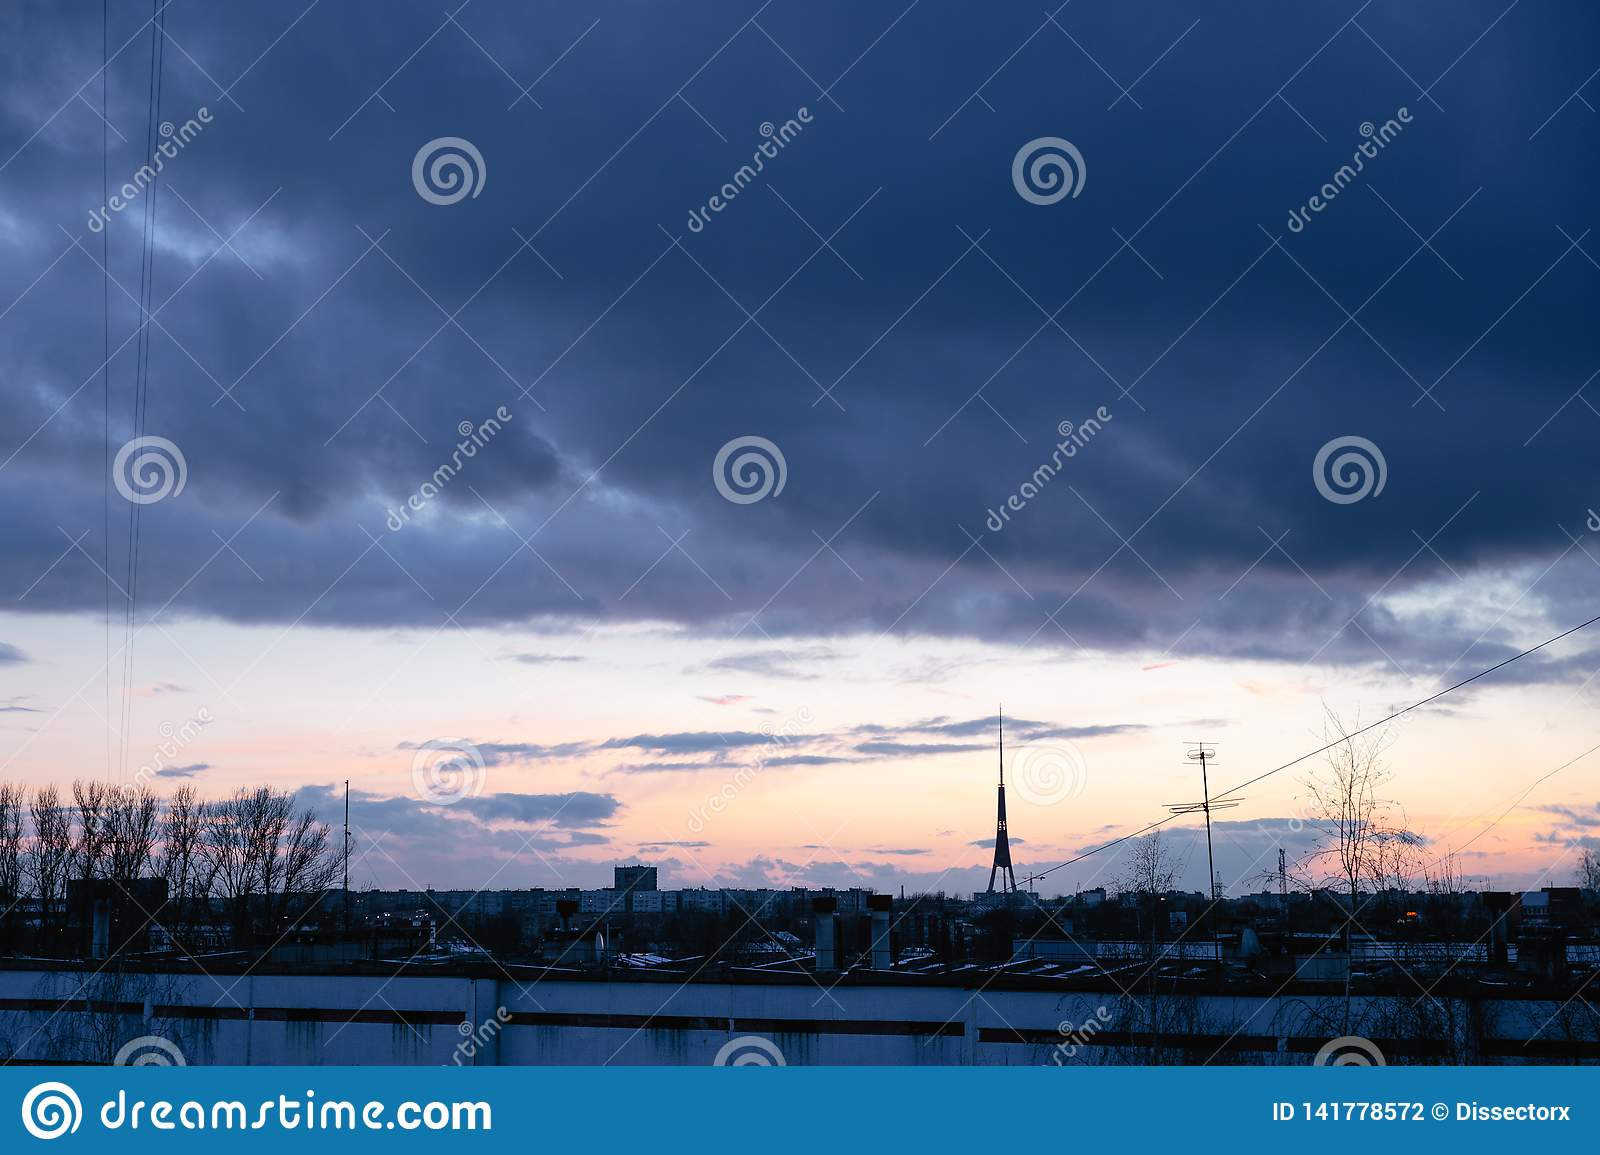 Cityscape with wonderful varicolored vivid dawn. Amazing dramatic blue sky with purple and violet clouds above dark